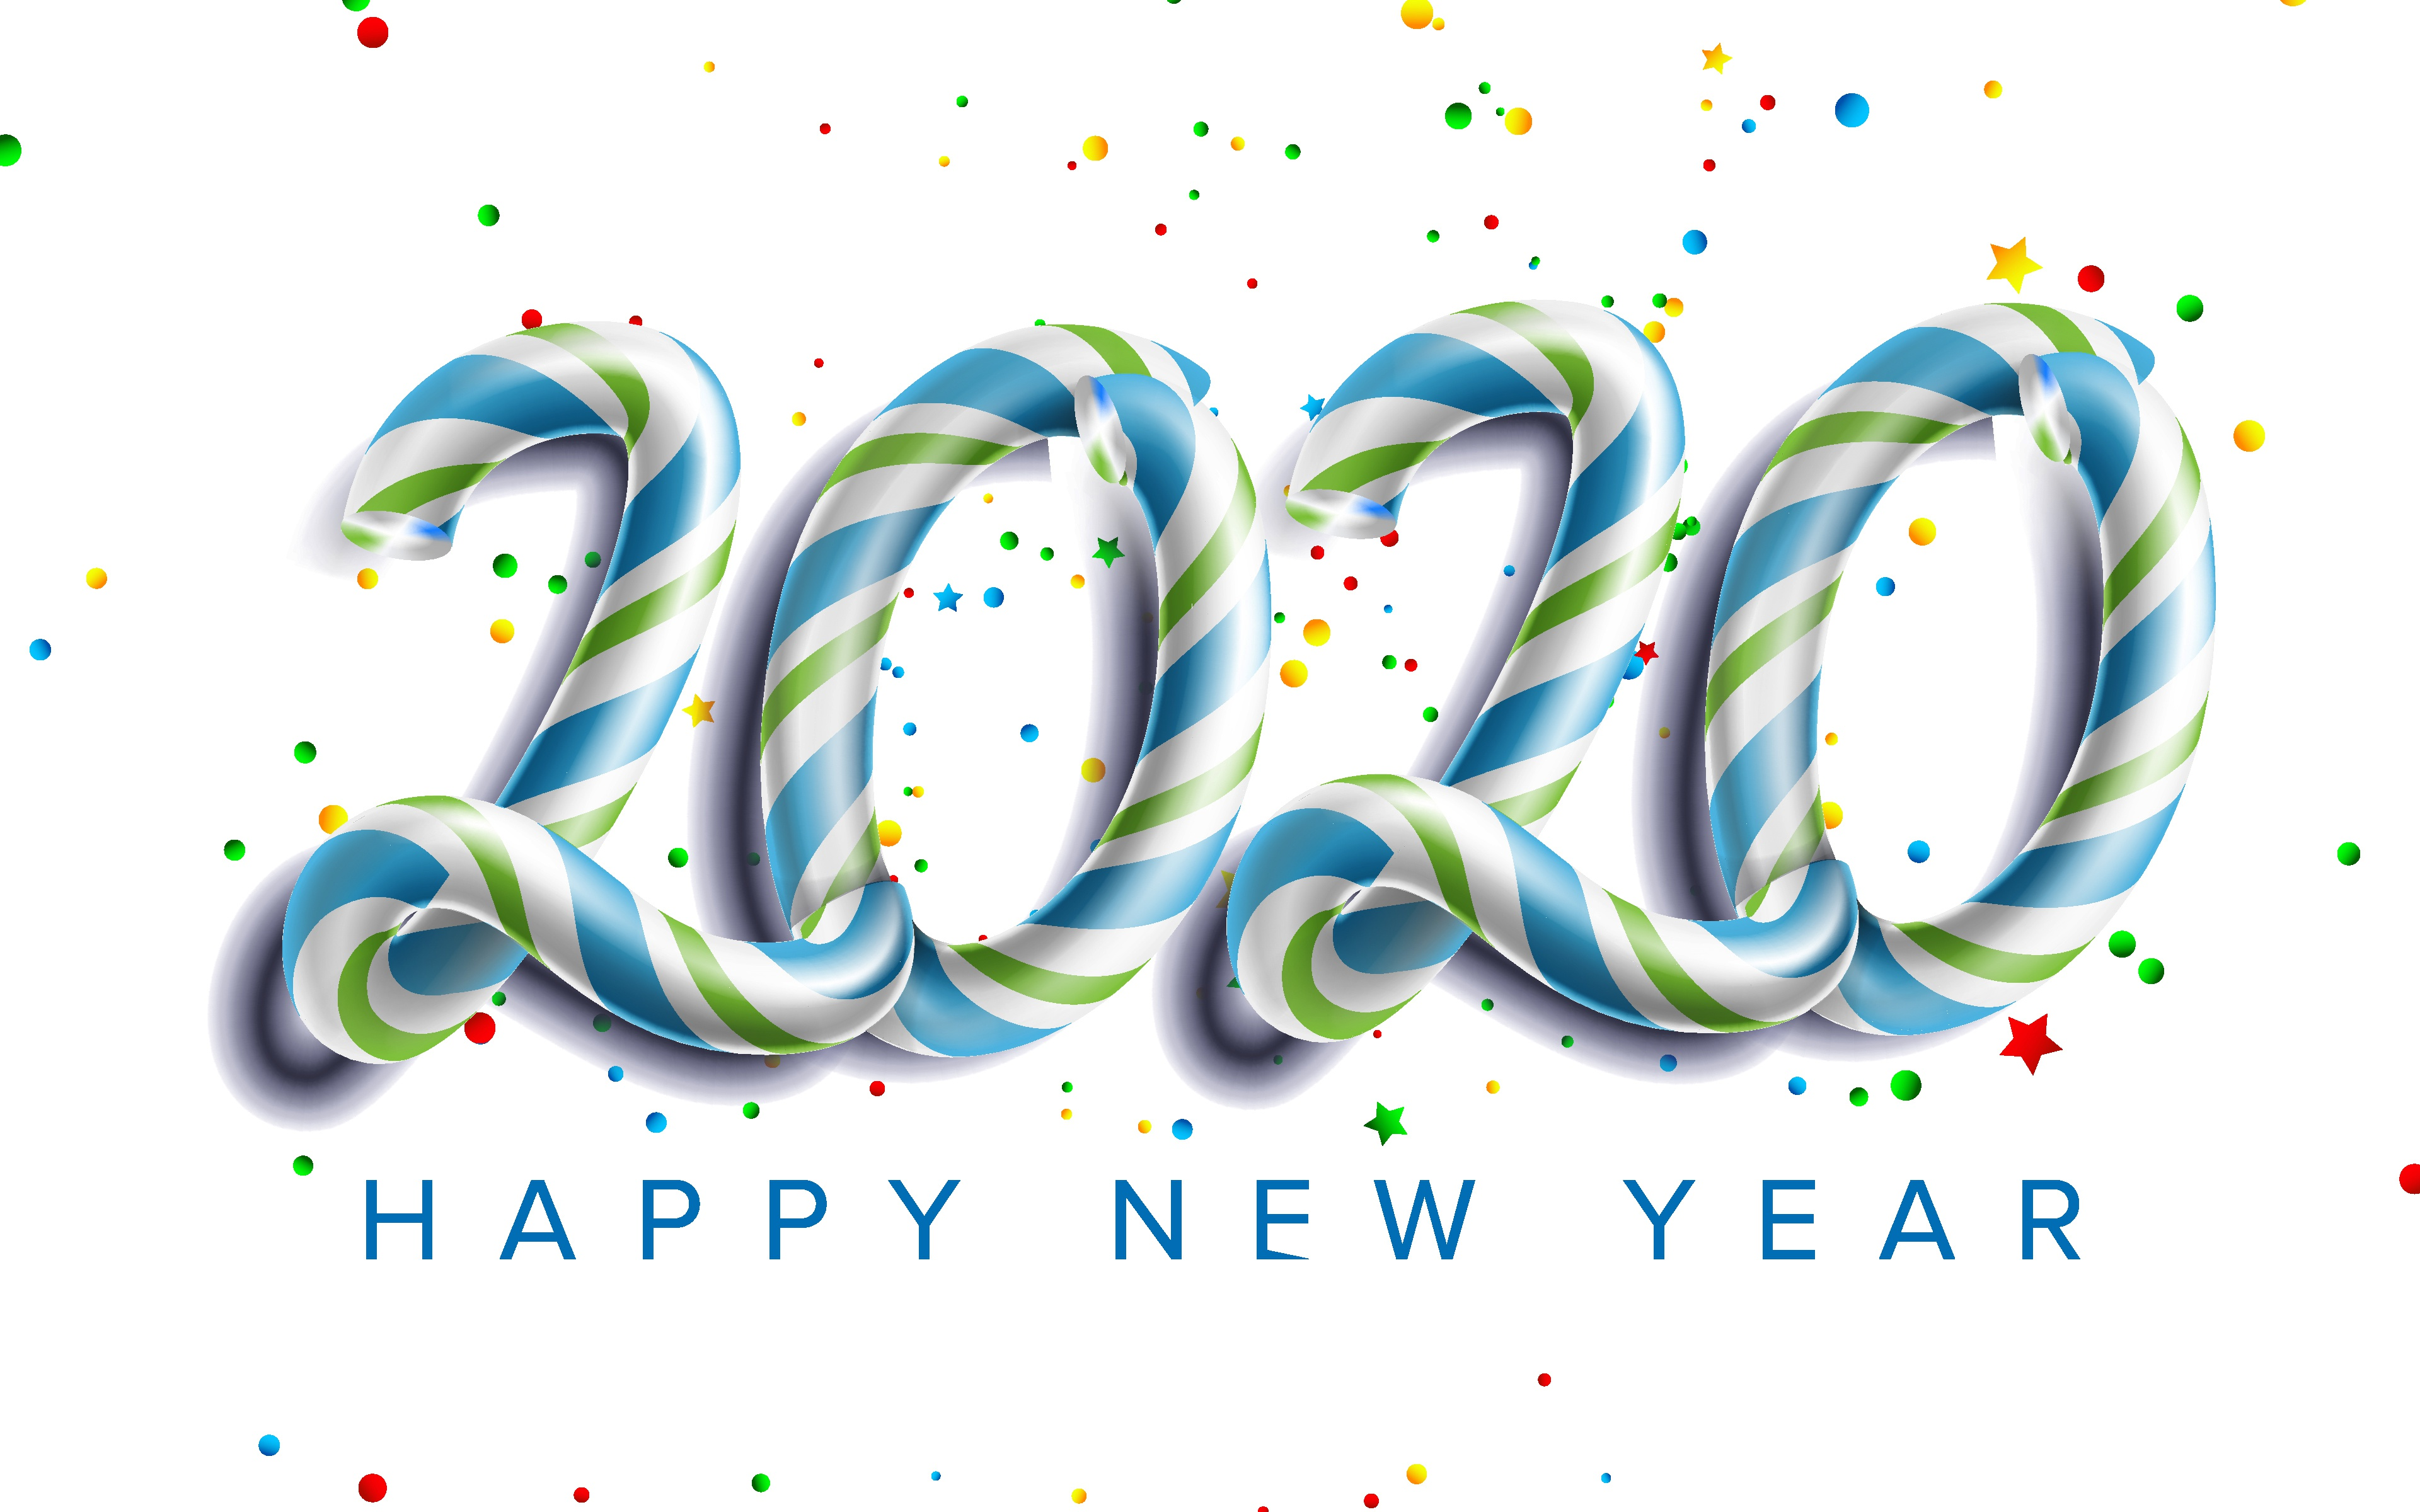 Happy New Year Candy Text HD Wallpaper 4k 3840x2400